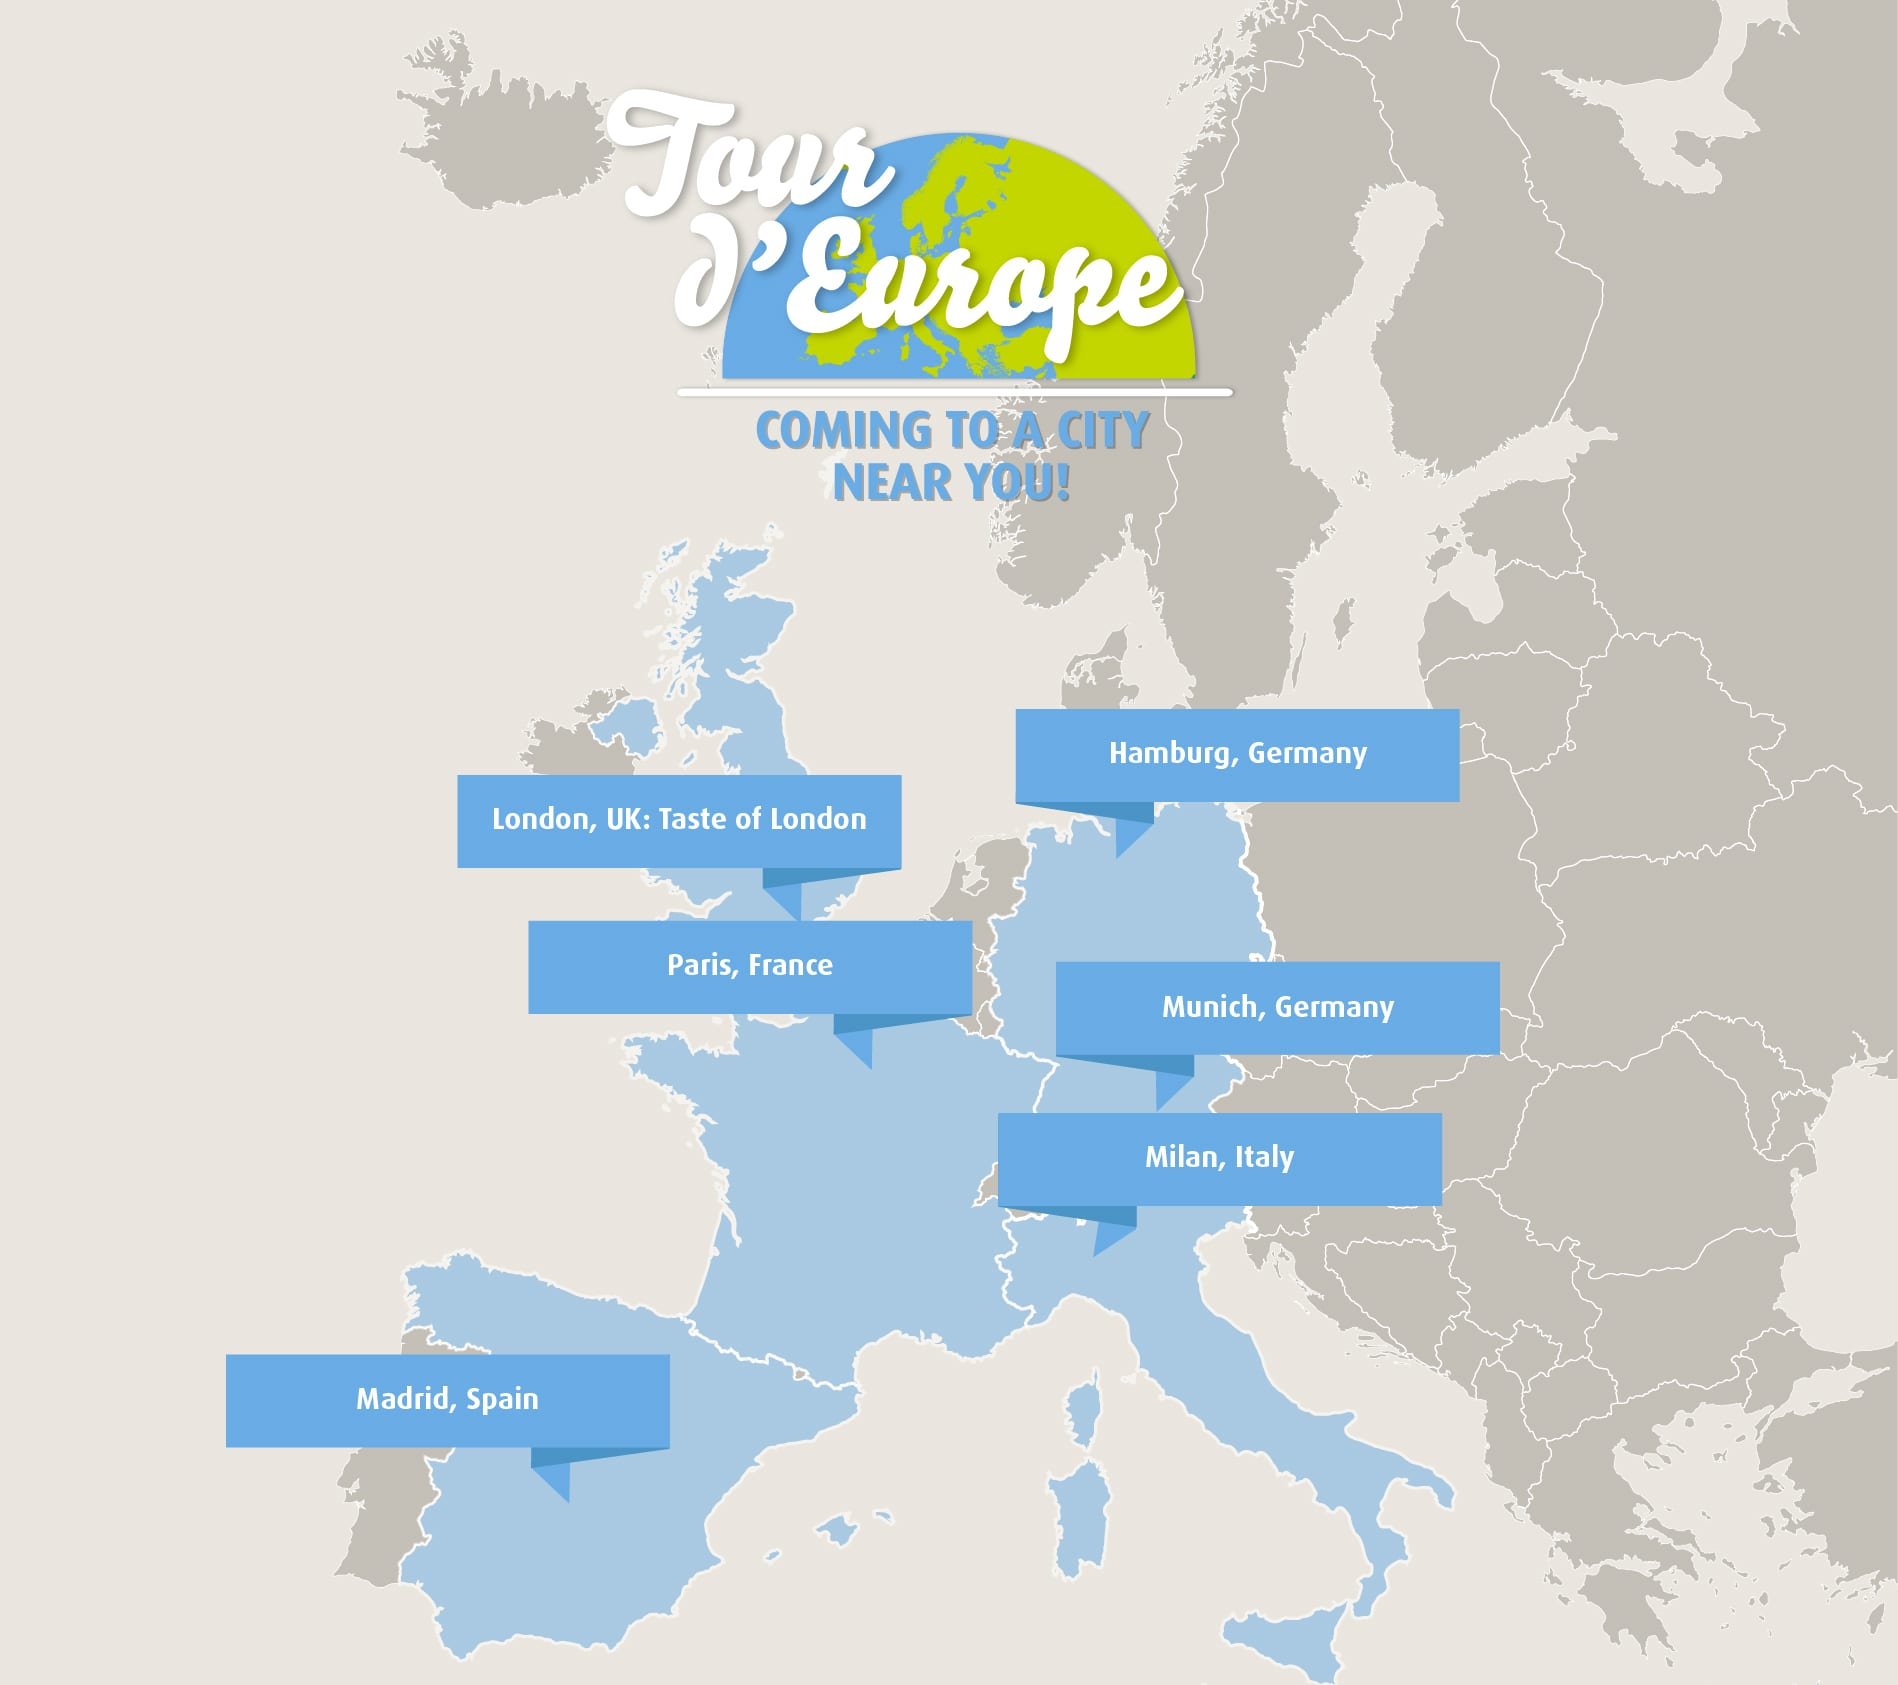 #MapYourTaste on the Tour d'Europe